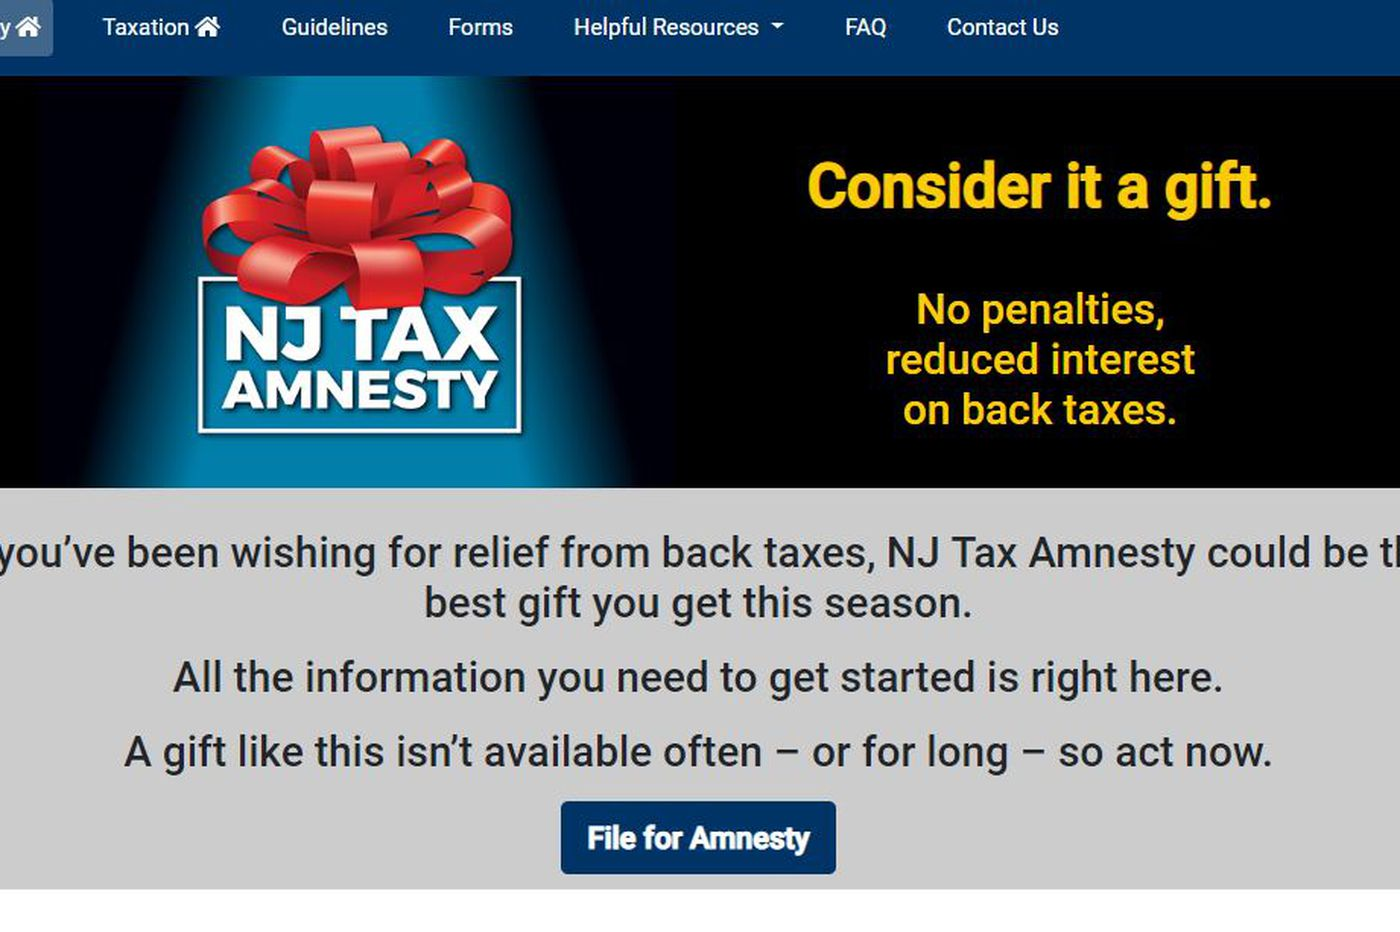 New Jersey offers 'gift' of tax amnesty. Is it worth it?